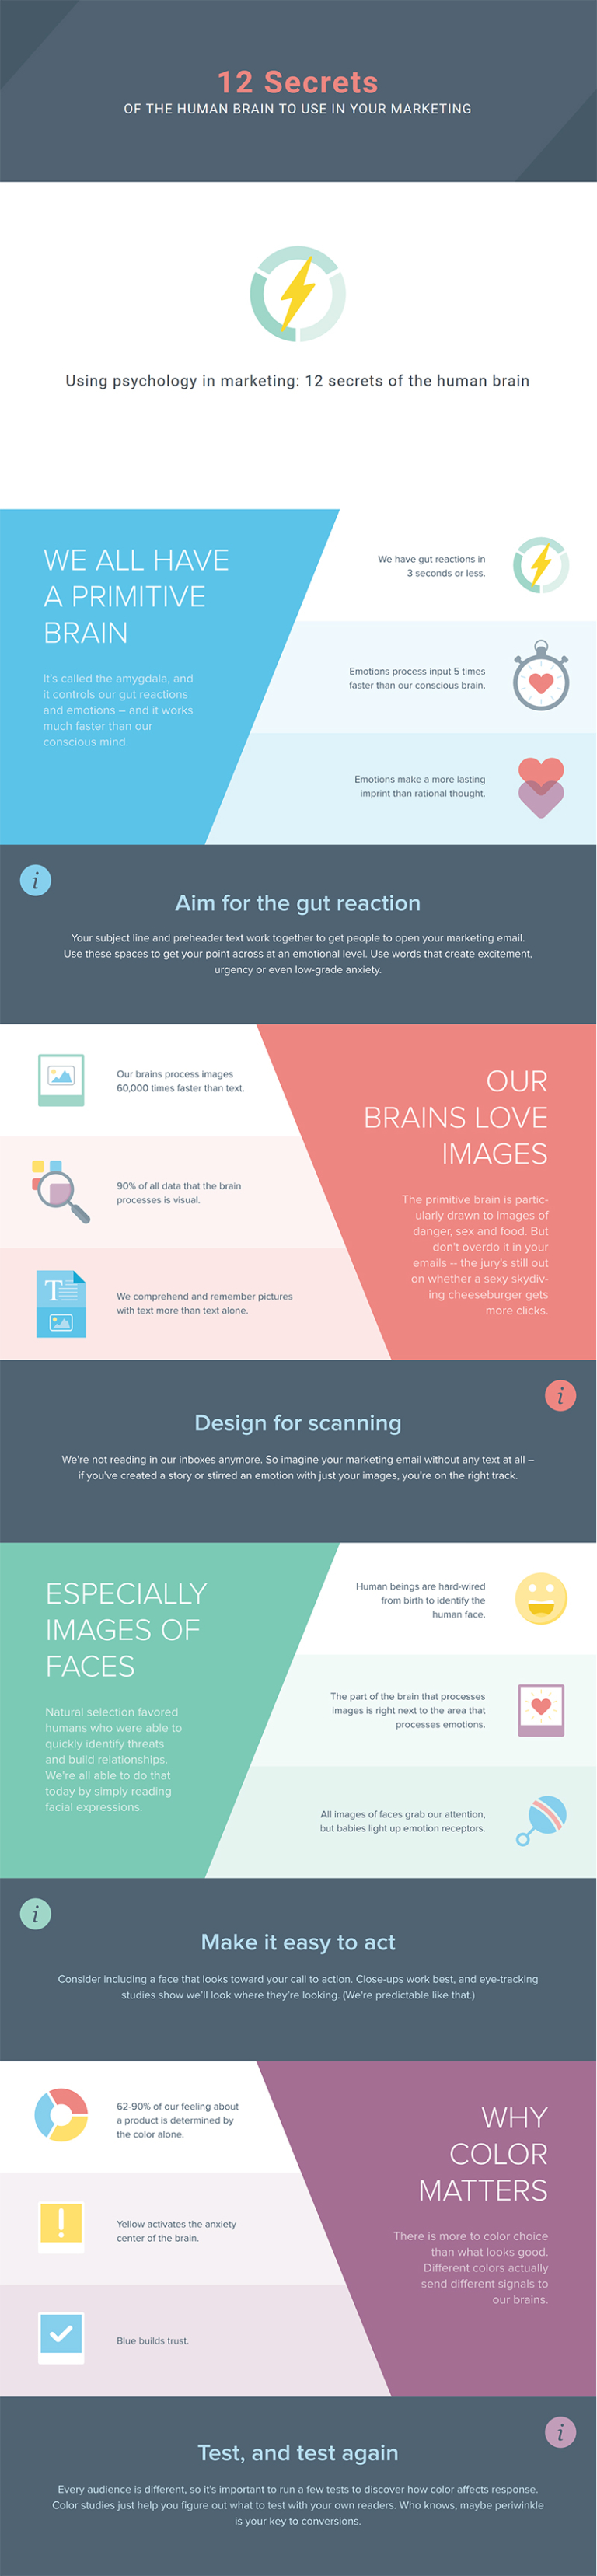 Infographic looks at the psychological principles of email marketing